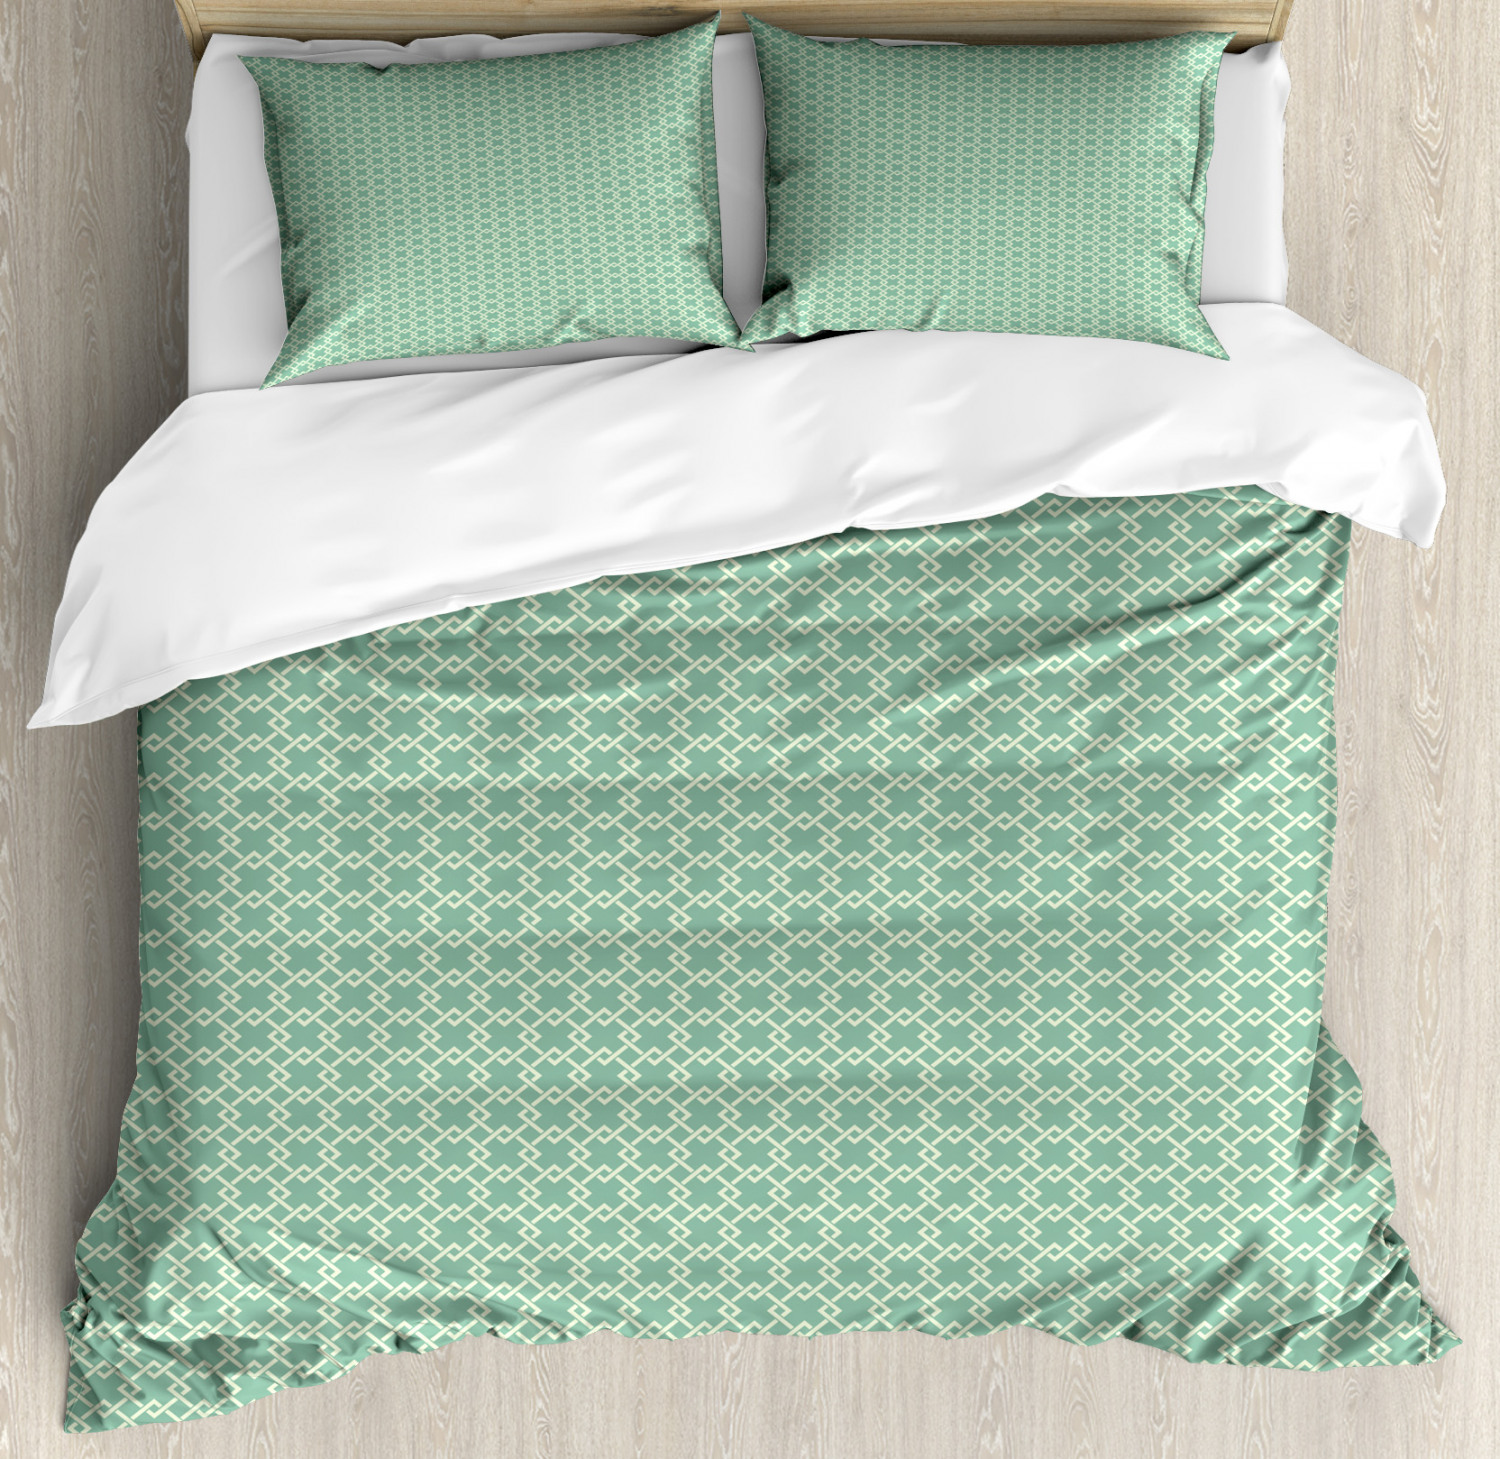 Abstract Queen Size Duvet Cover Set Retro Rhombus Motifs with 2 Pillow Shams